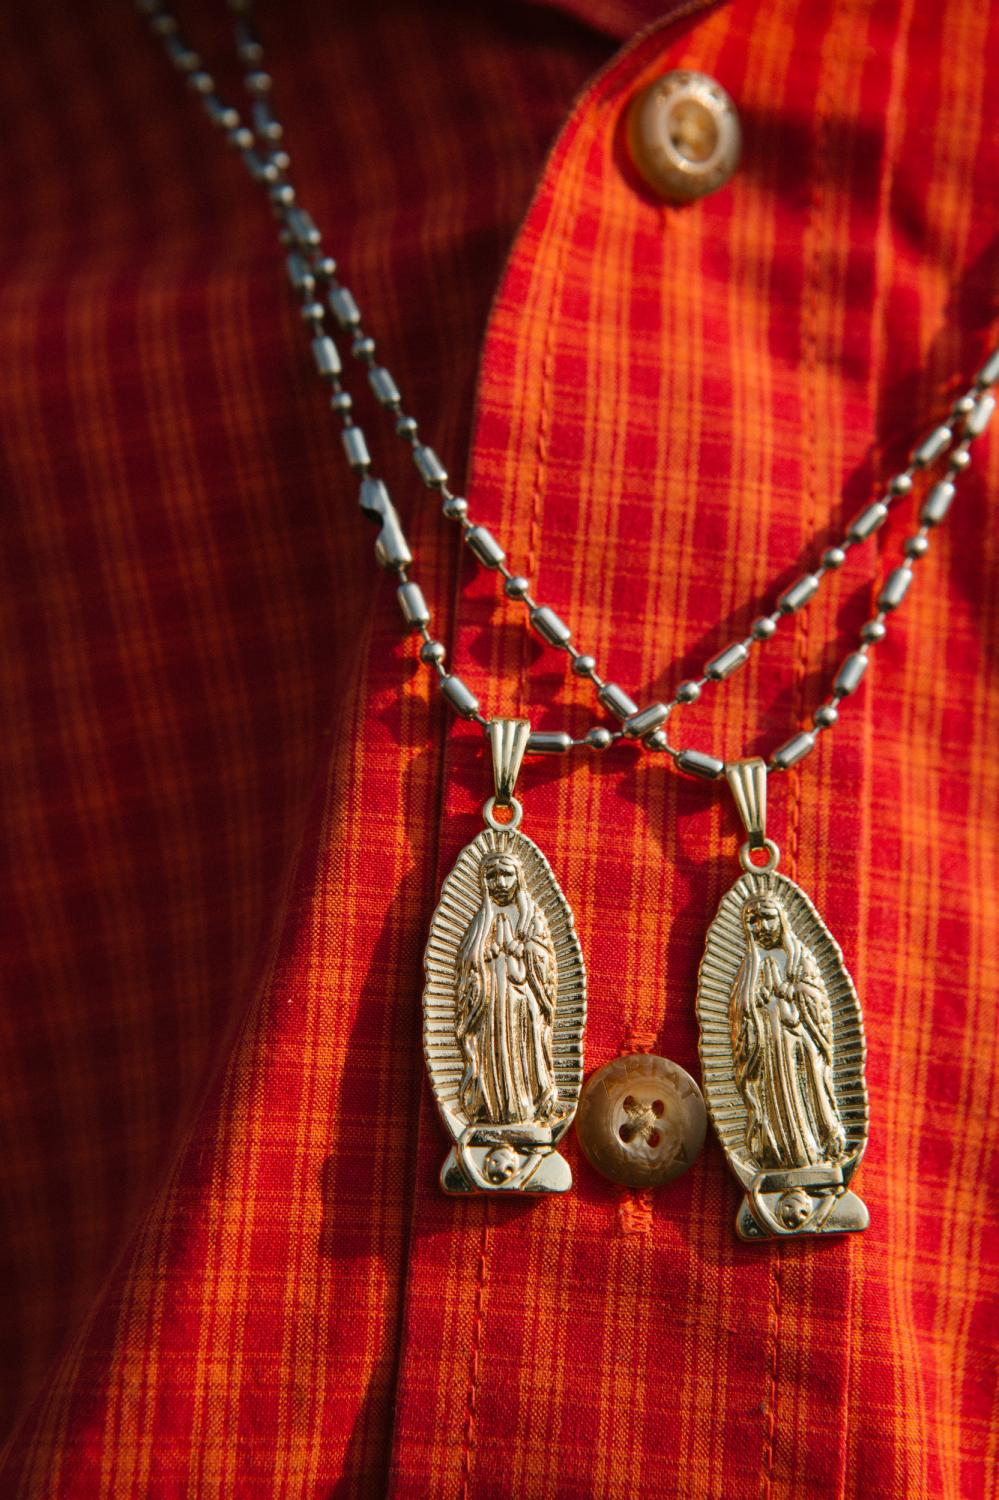 Virgin of Guadalupe necklaces hang from a young man's neck at the Basilica of Our Lady of Guadalupe in Mexico City, Mexico.